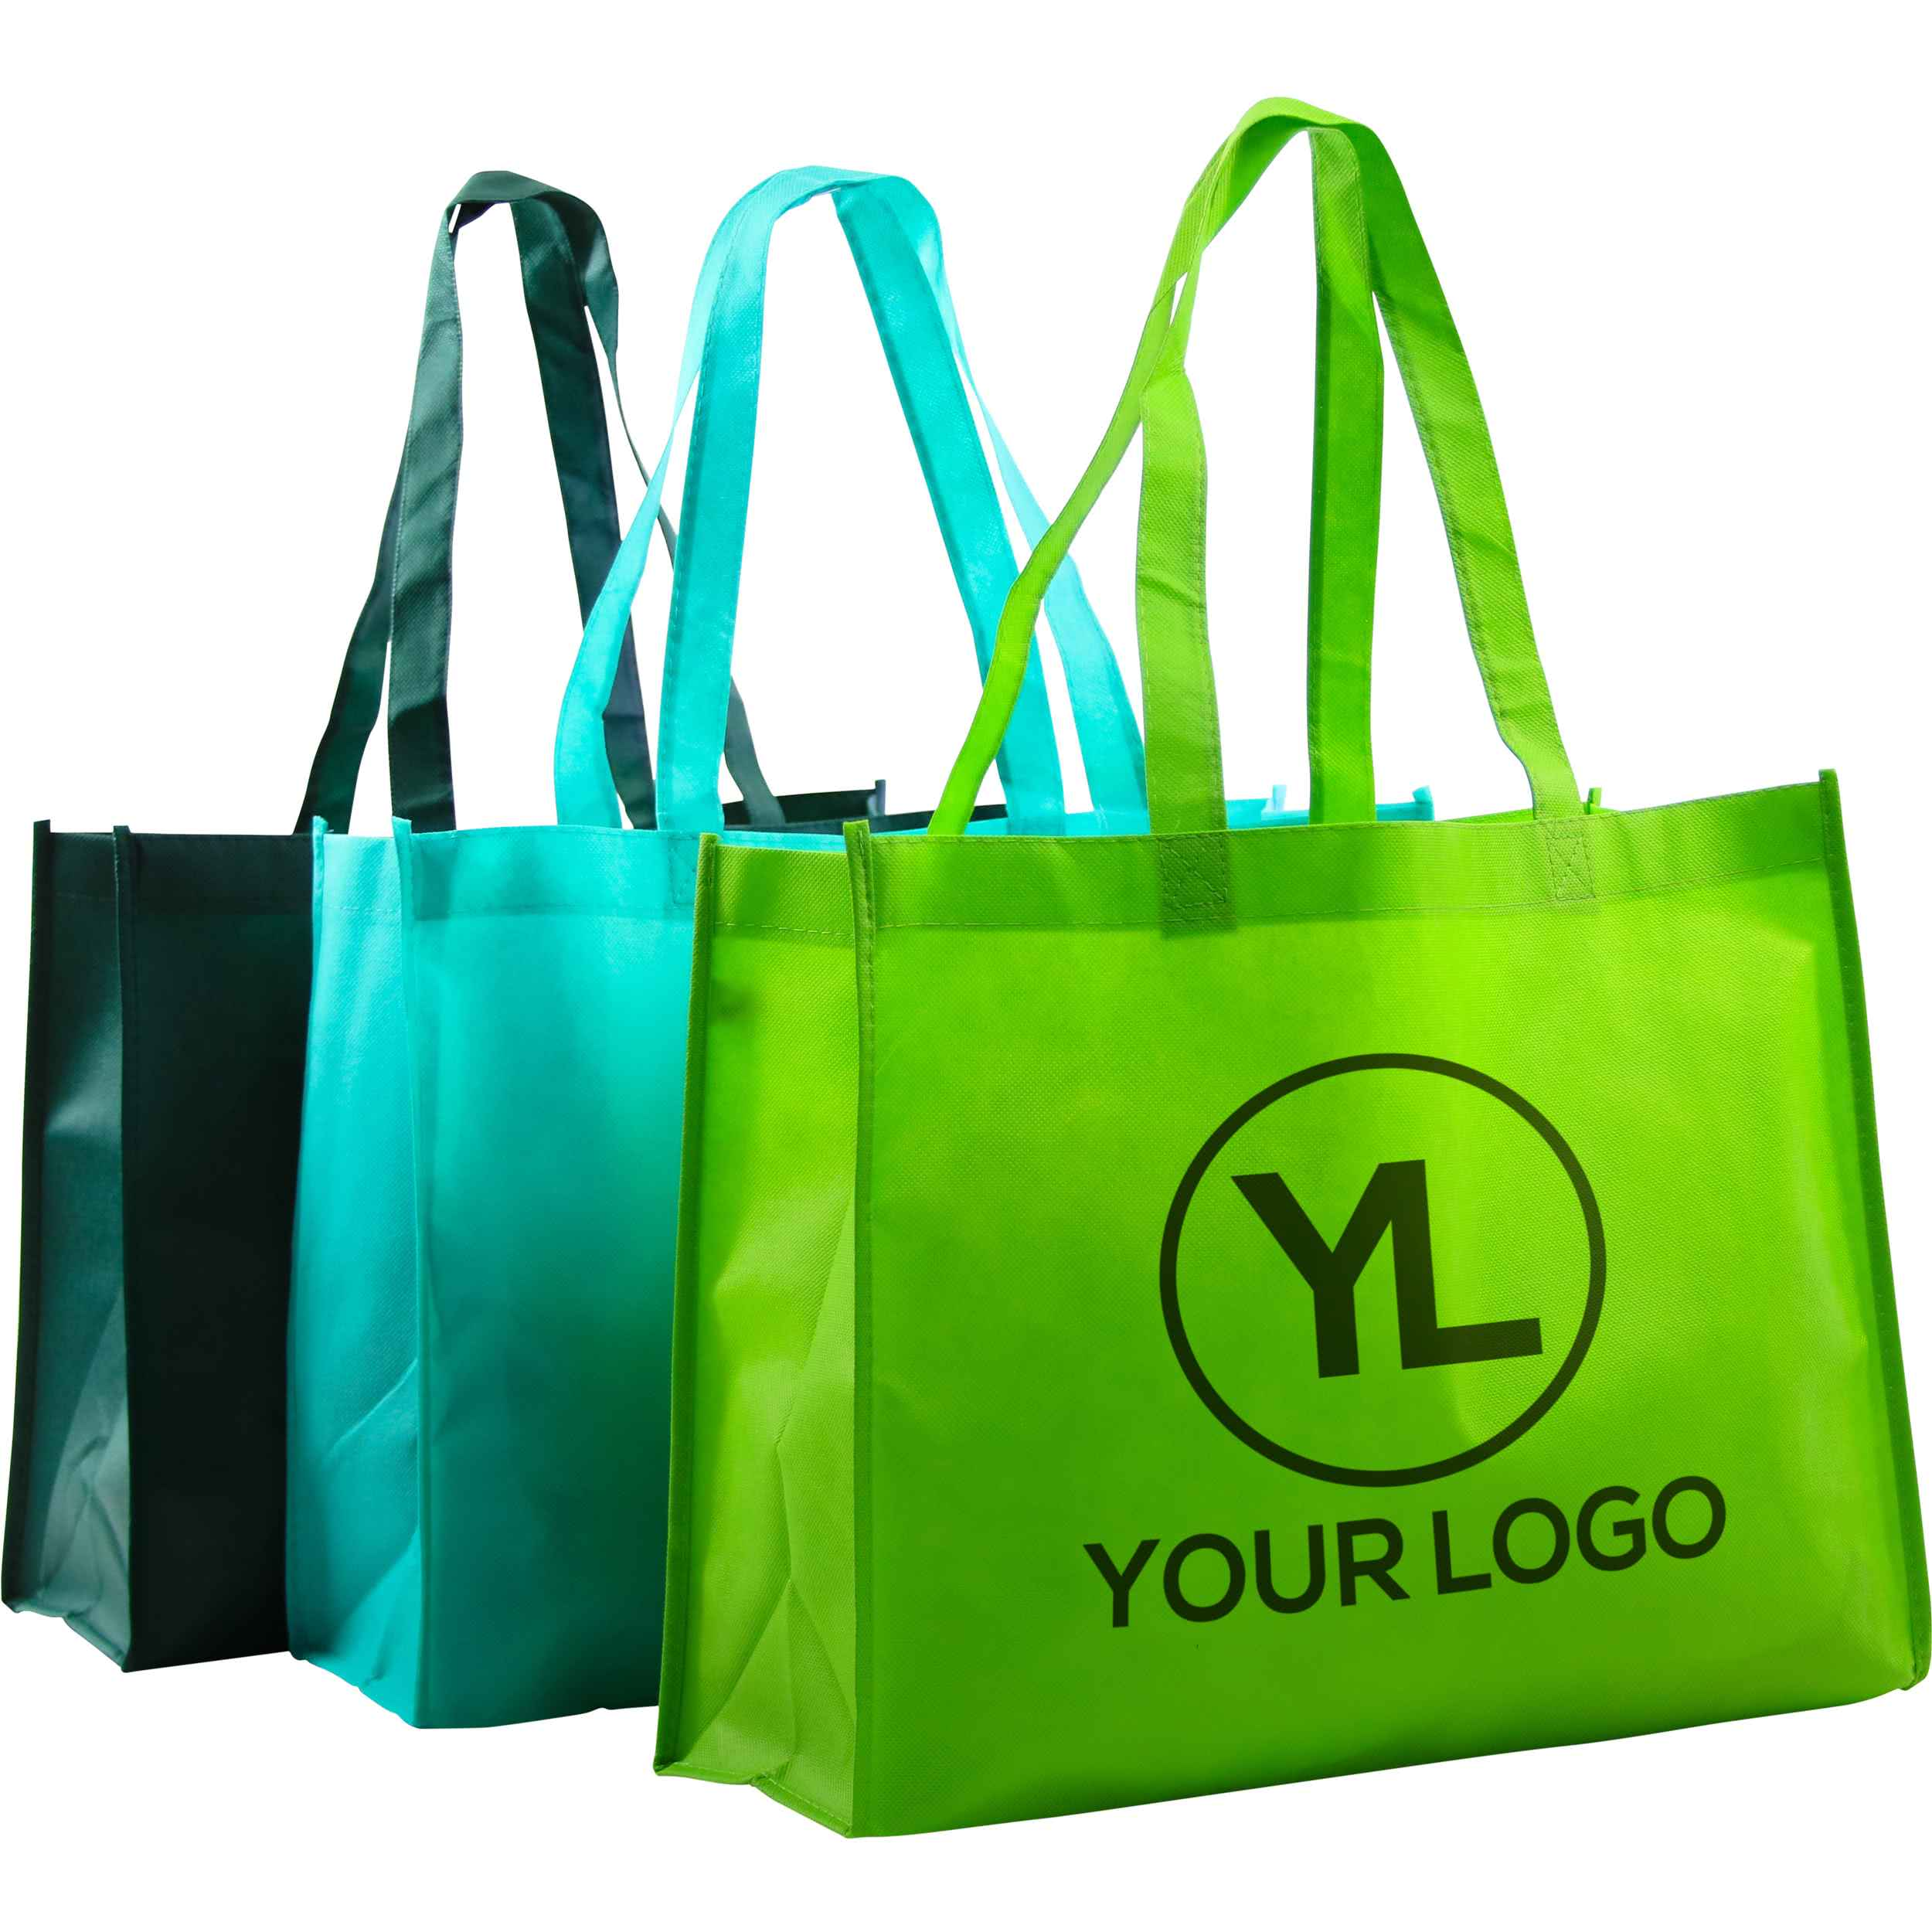 Promotional Medium Eco-Friendly Non Woven Tote Bags with Custom Logo ...